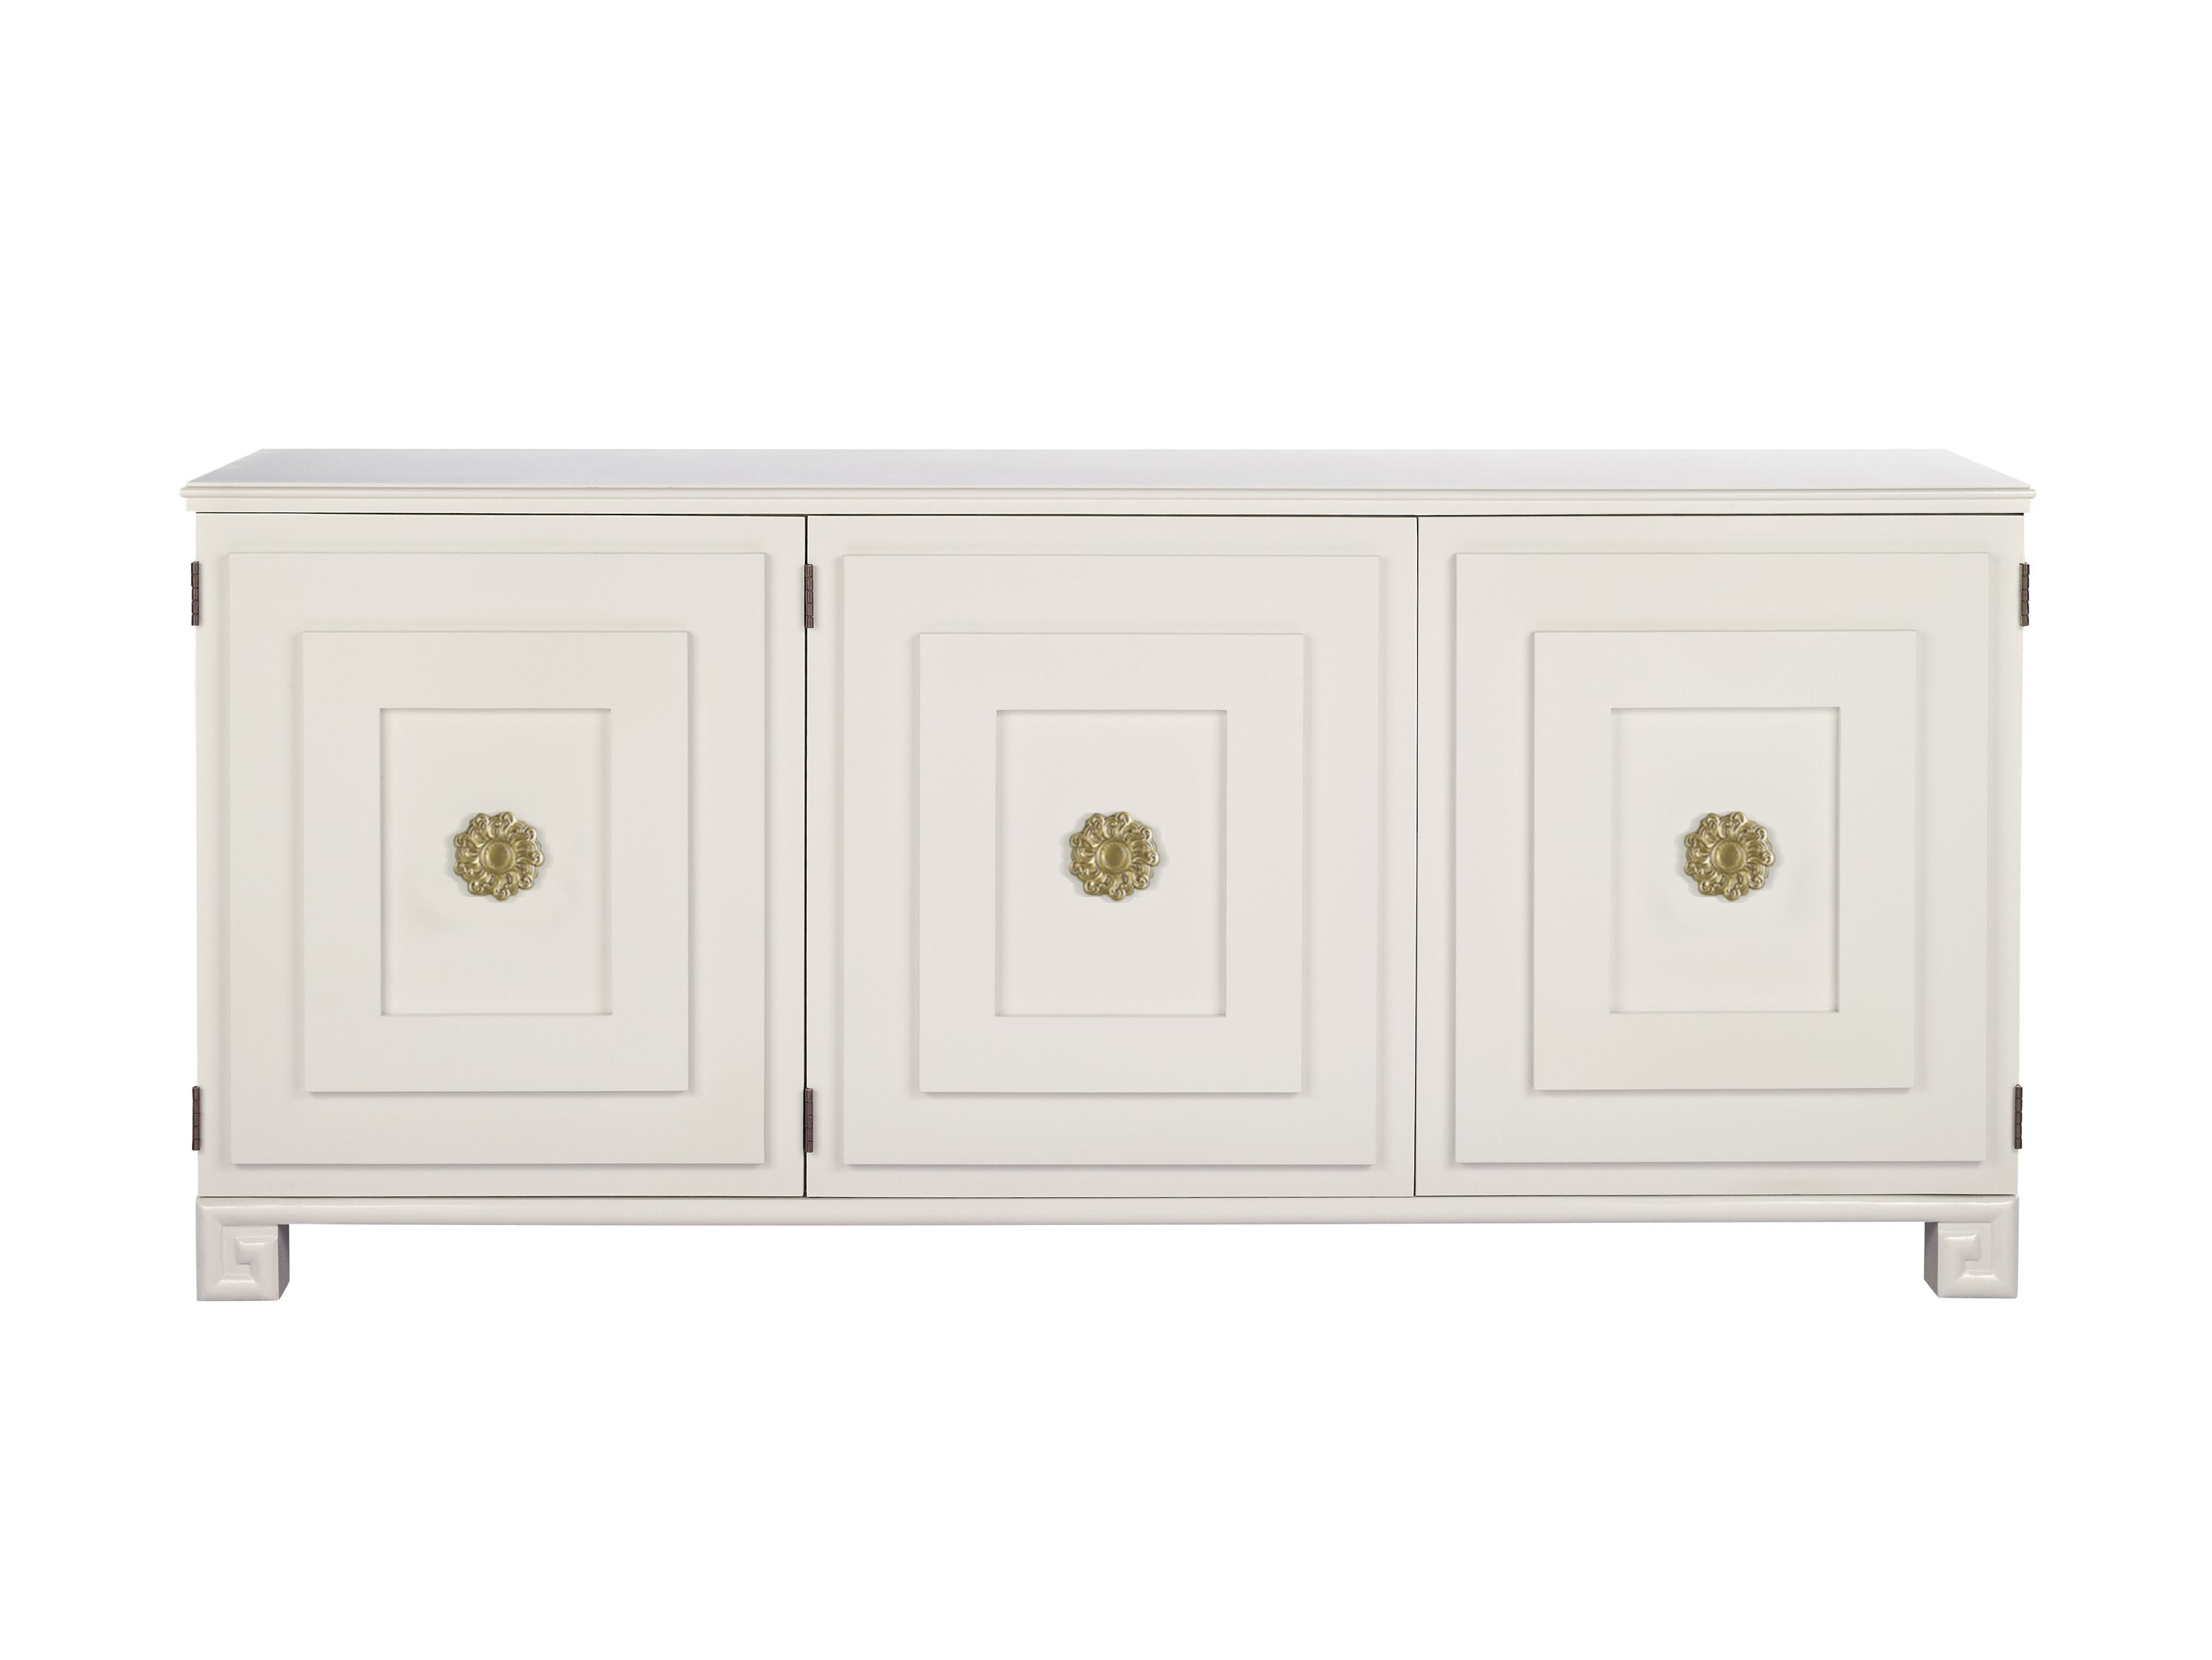 The New 1548 70 Tuxedo Sideboard By Suzanne Kasler For Hickory  # Muebles Hickory